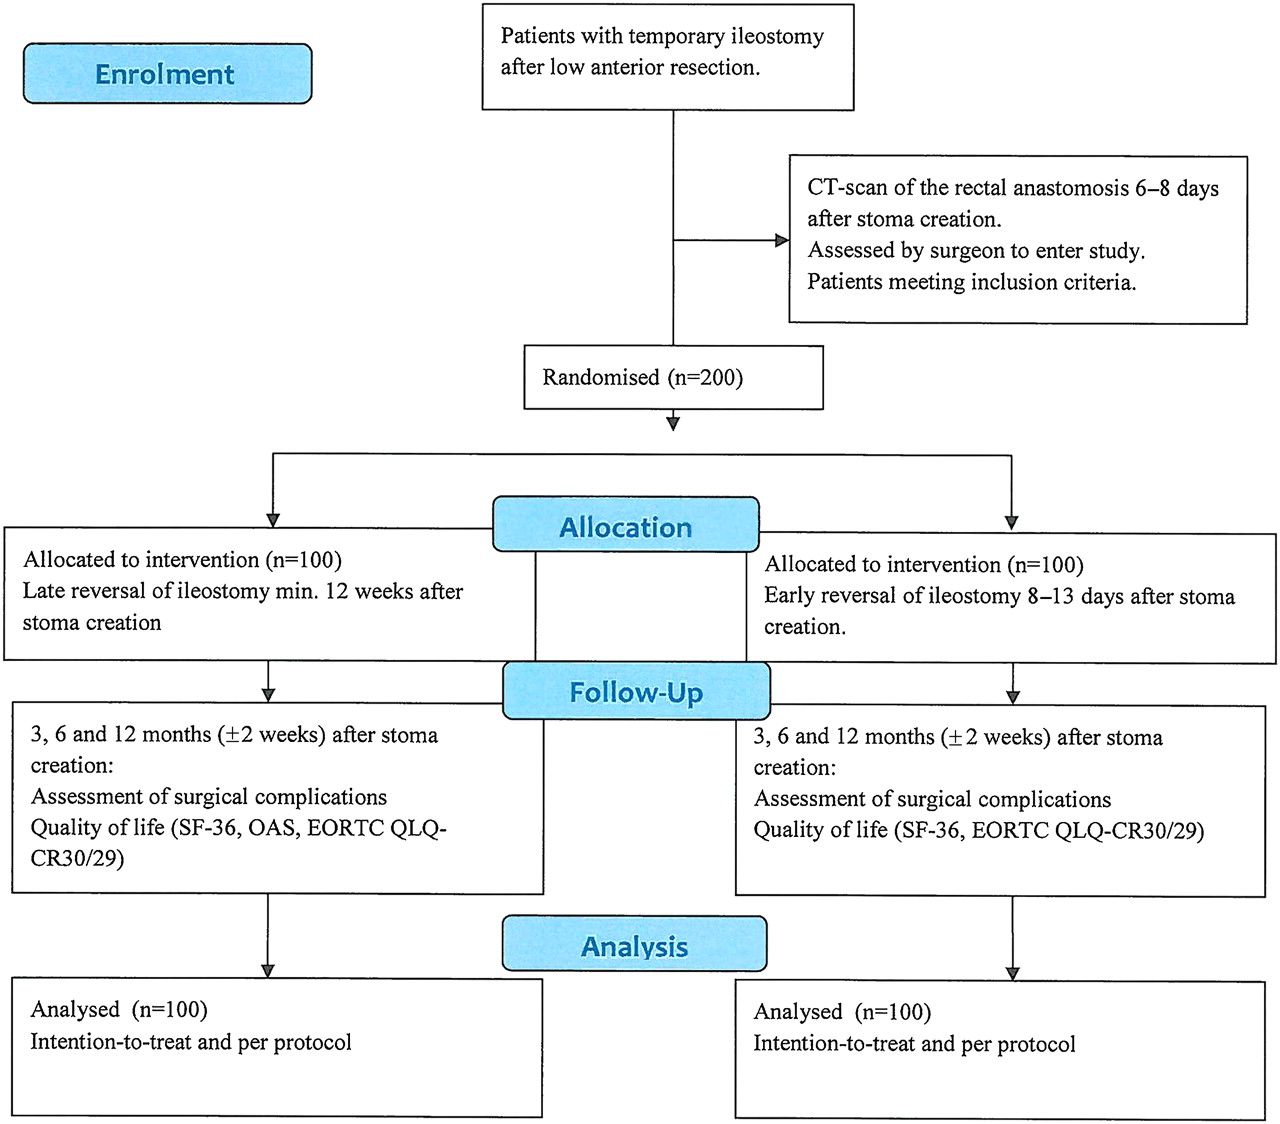 Early Closure Of Temporary Ileostomy The Easy Trial Protocol For A